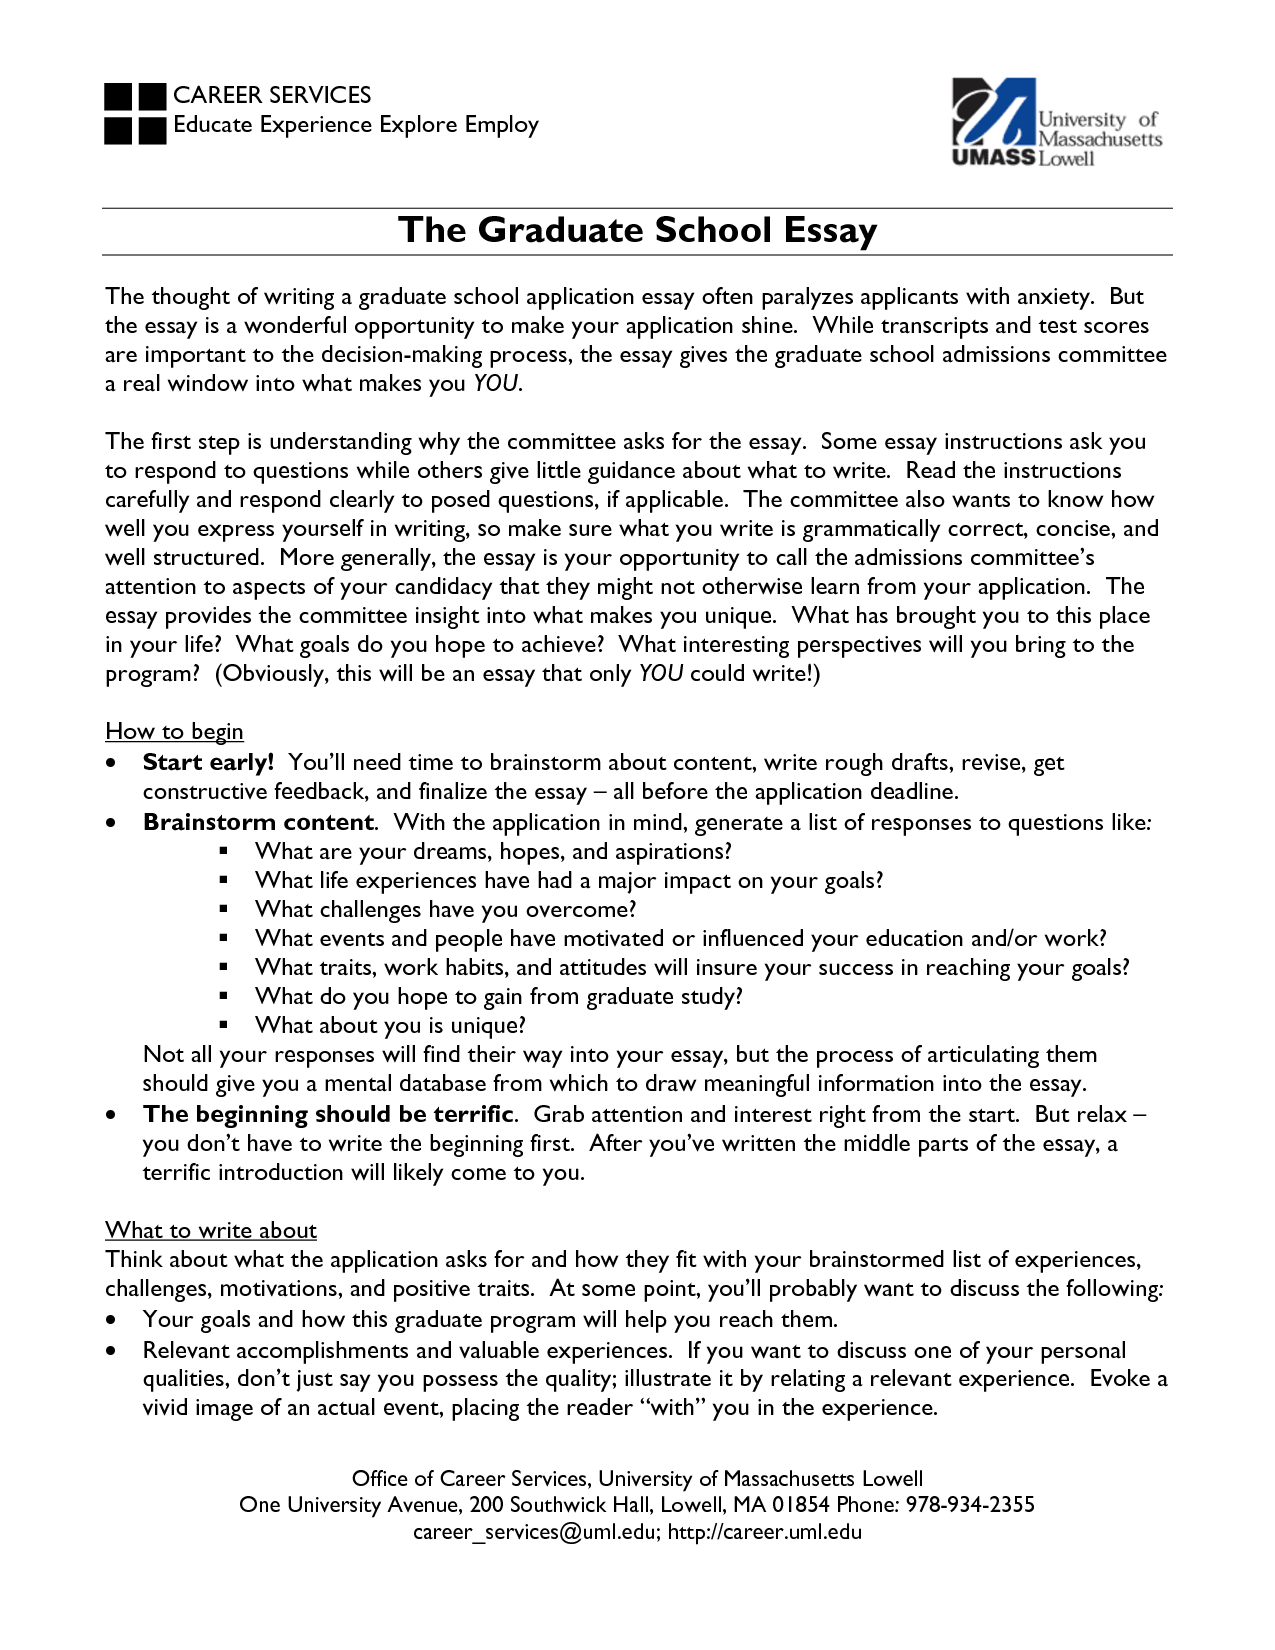 essay graduate school entrance Careers@hsphharvardedu (617) 432-1034 http://wwwhsphharvardedu/ career -services/ writing a graduate school application essay getting started every graduate school requires applicants to submit either a personal statement or a statement of purpose (sometimes called a research statement) this handout details.